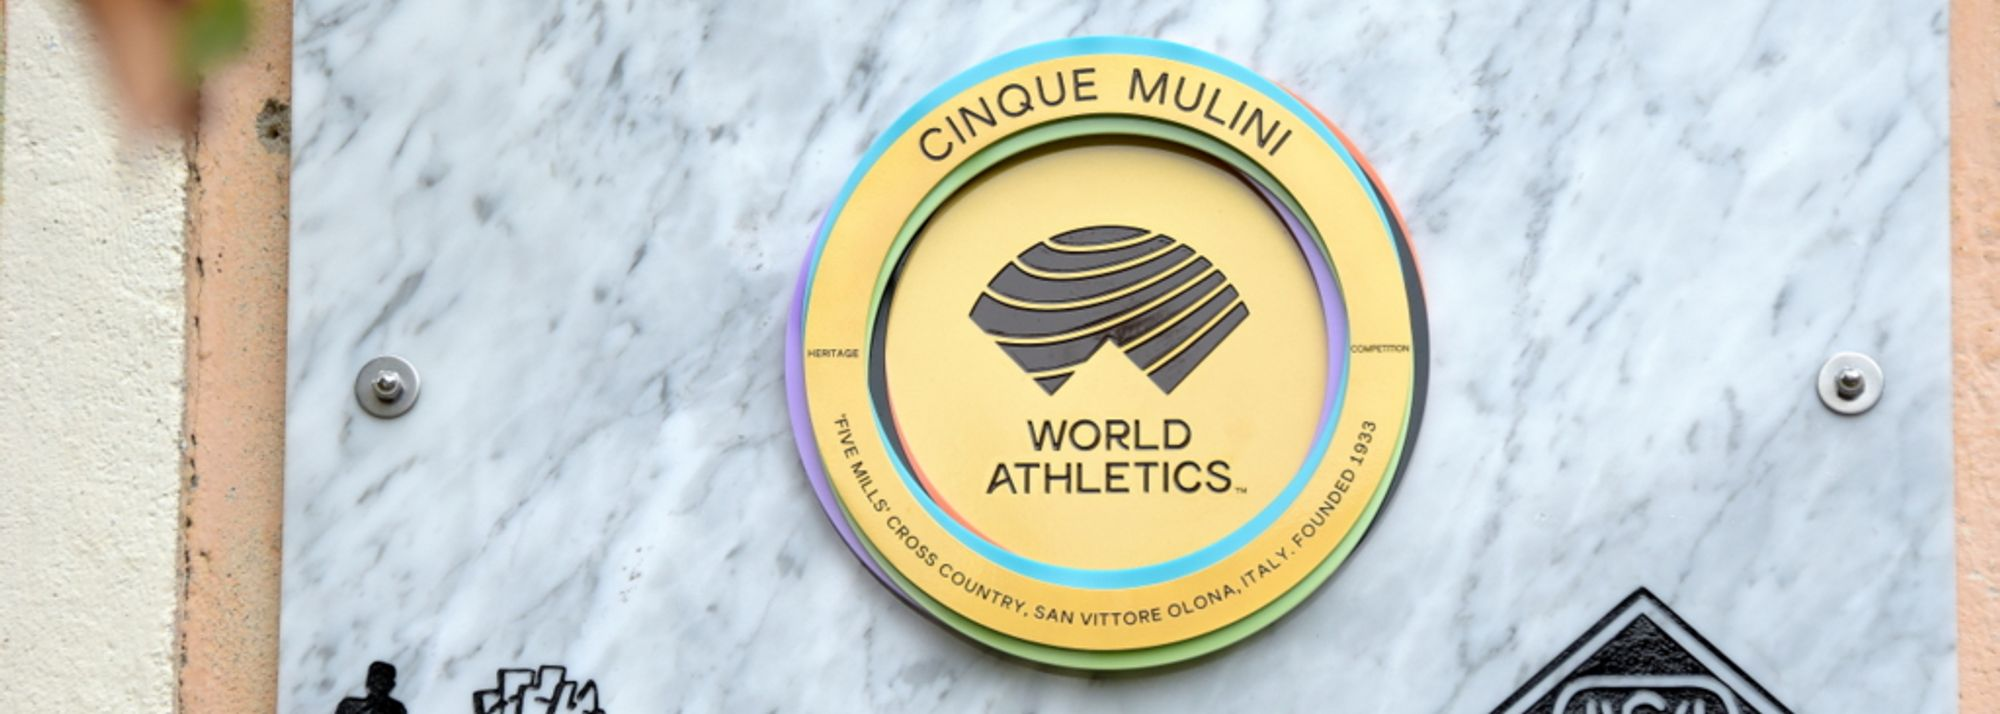 Cinque Mulini's World Athletics Heritage Plaque is unveiled on the side of the Meraviglia Mill